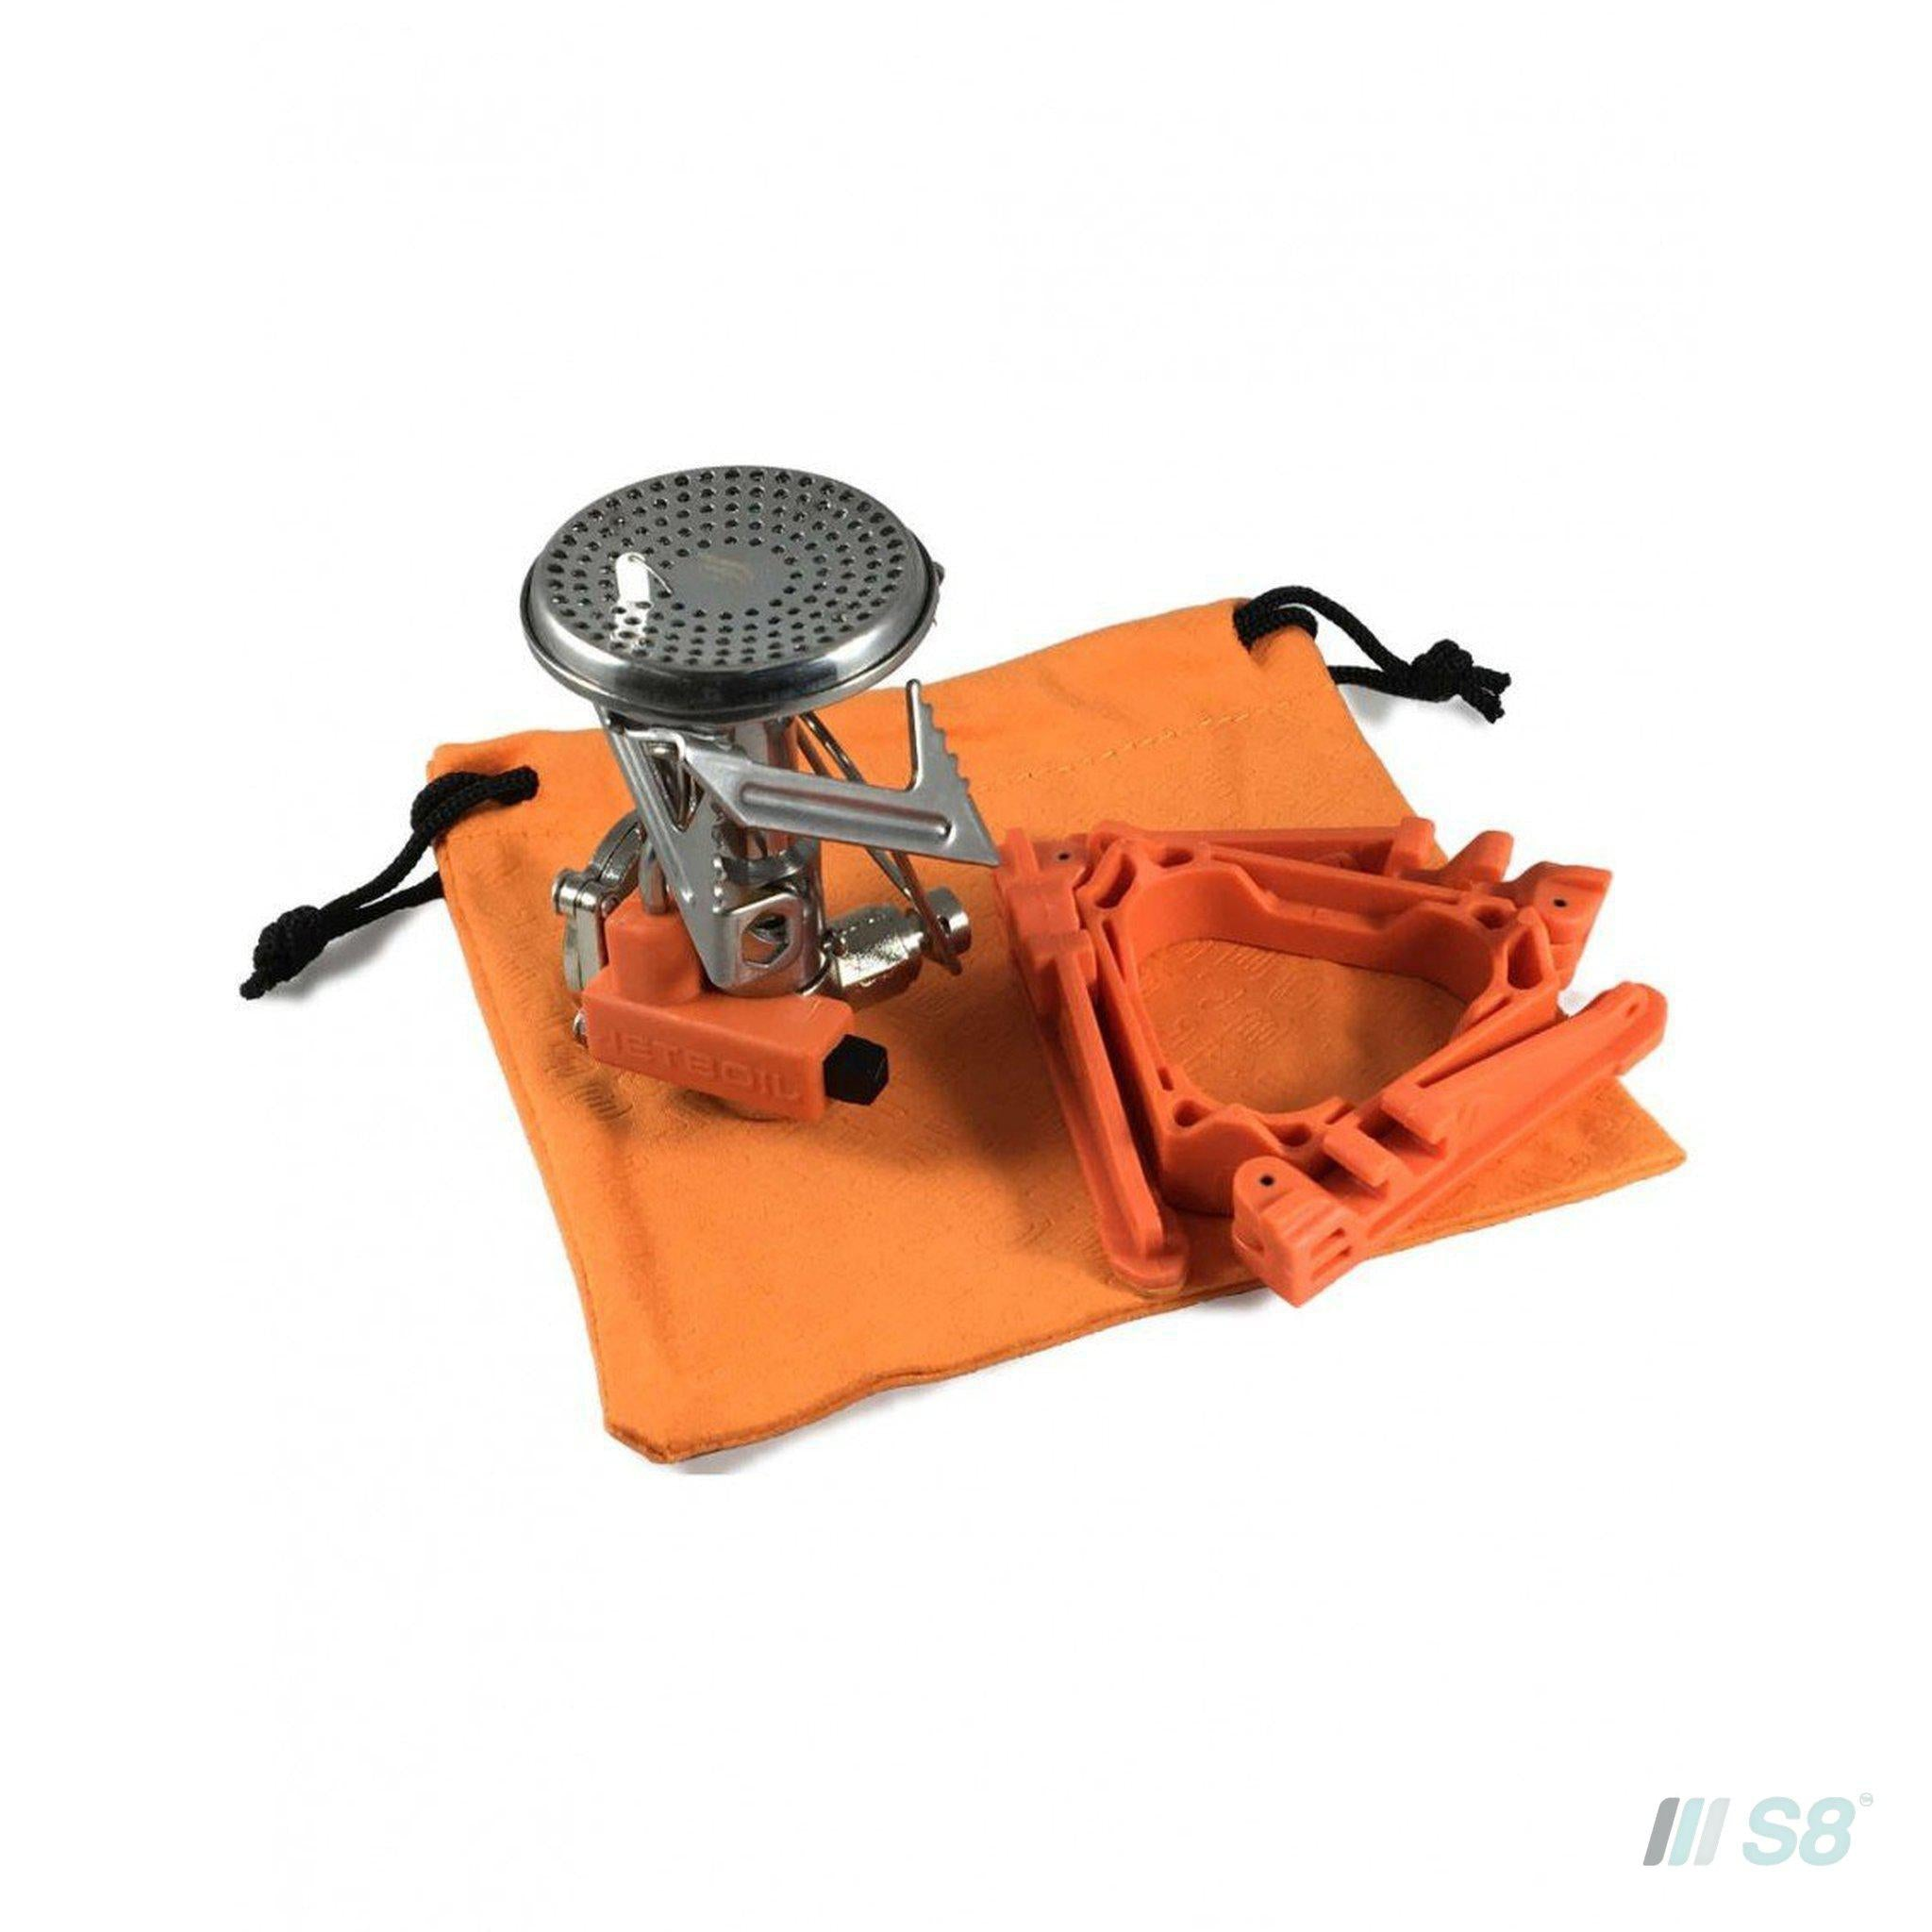 Jetboil MightyMo-jetboil-S8 Products Group